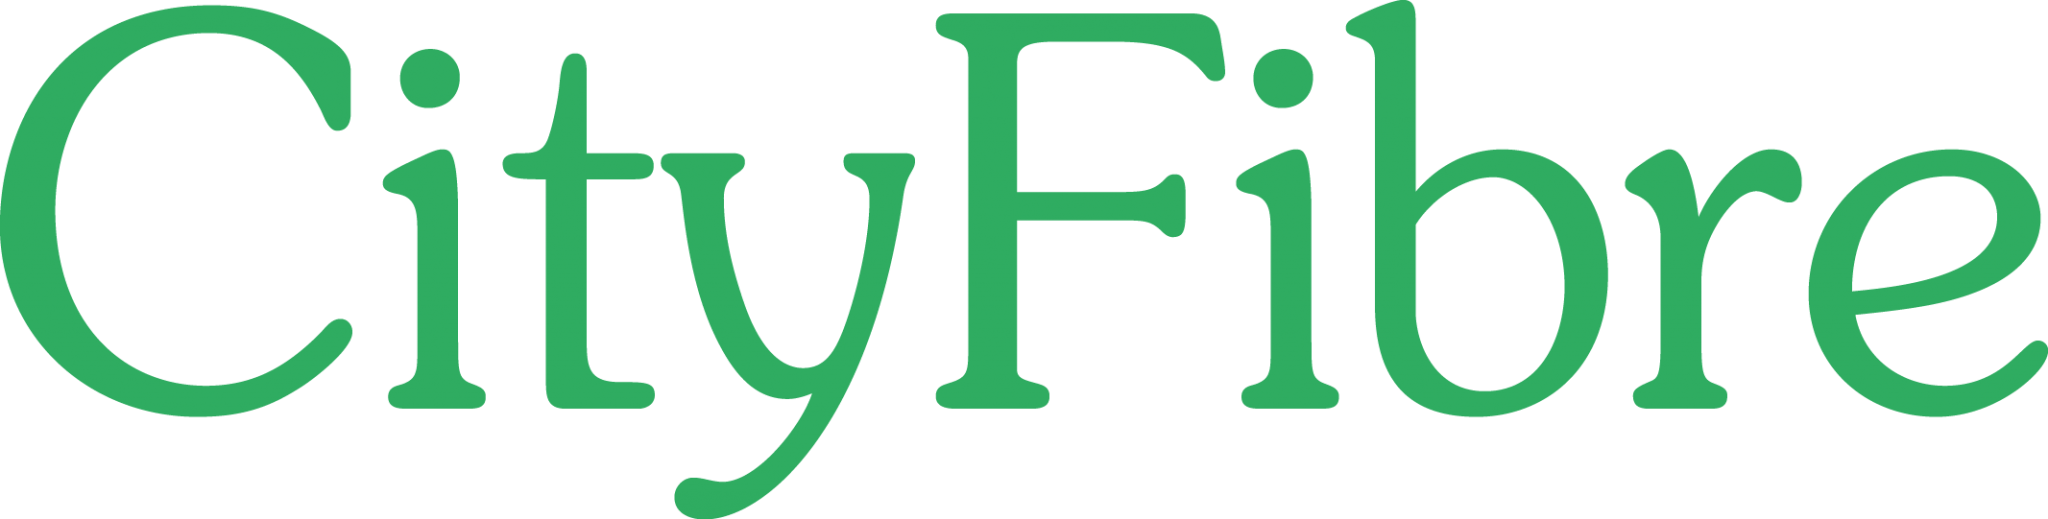 CF-logo-New-Green-1